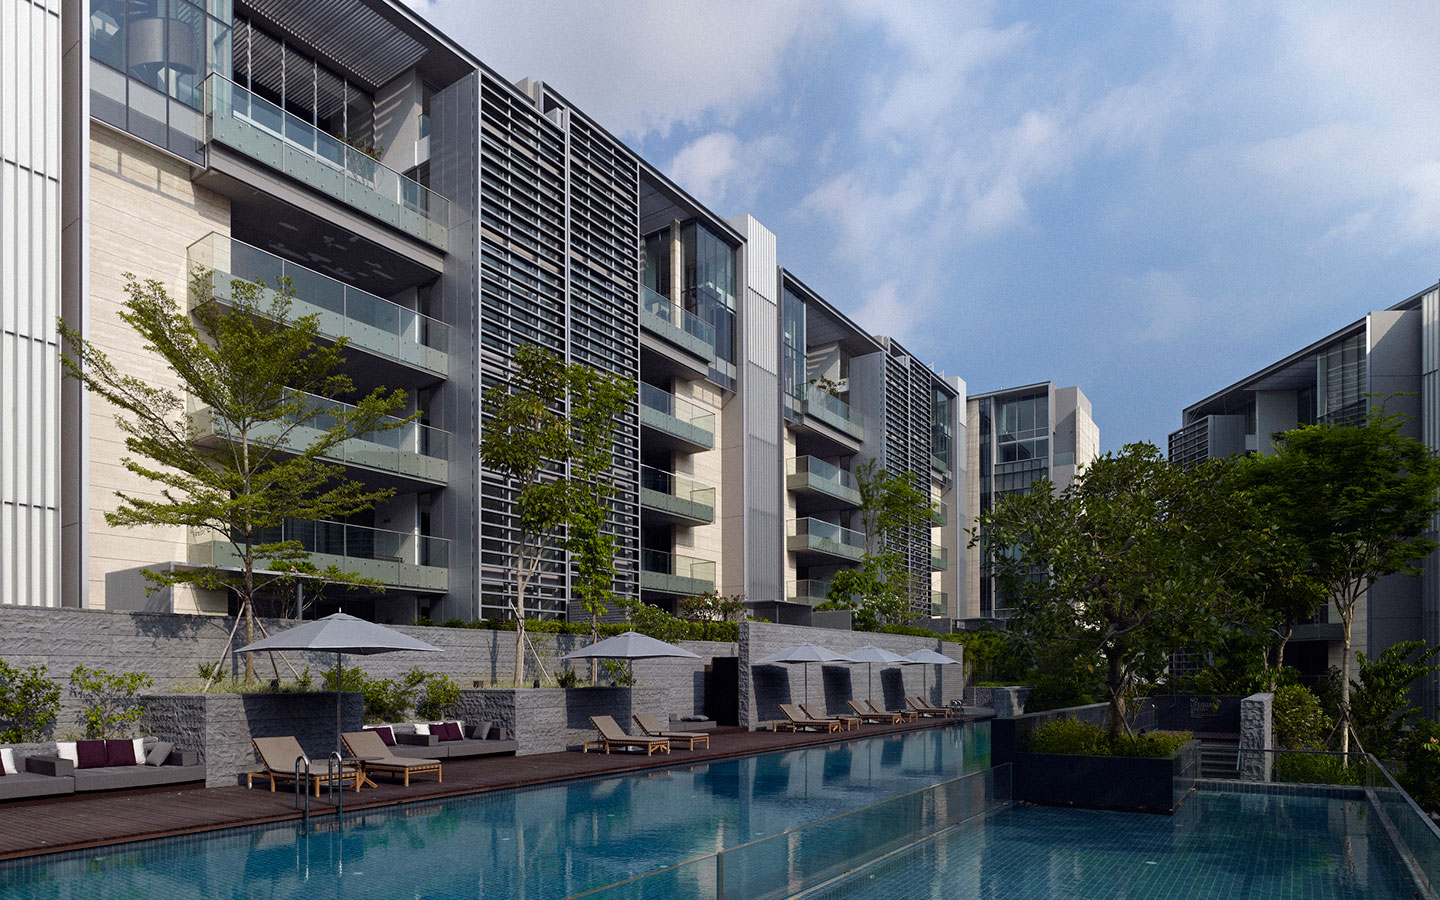 Nassim Park Residences by Kheng Leong . Developer for 15 Holland Hill Singapore